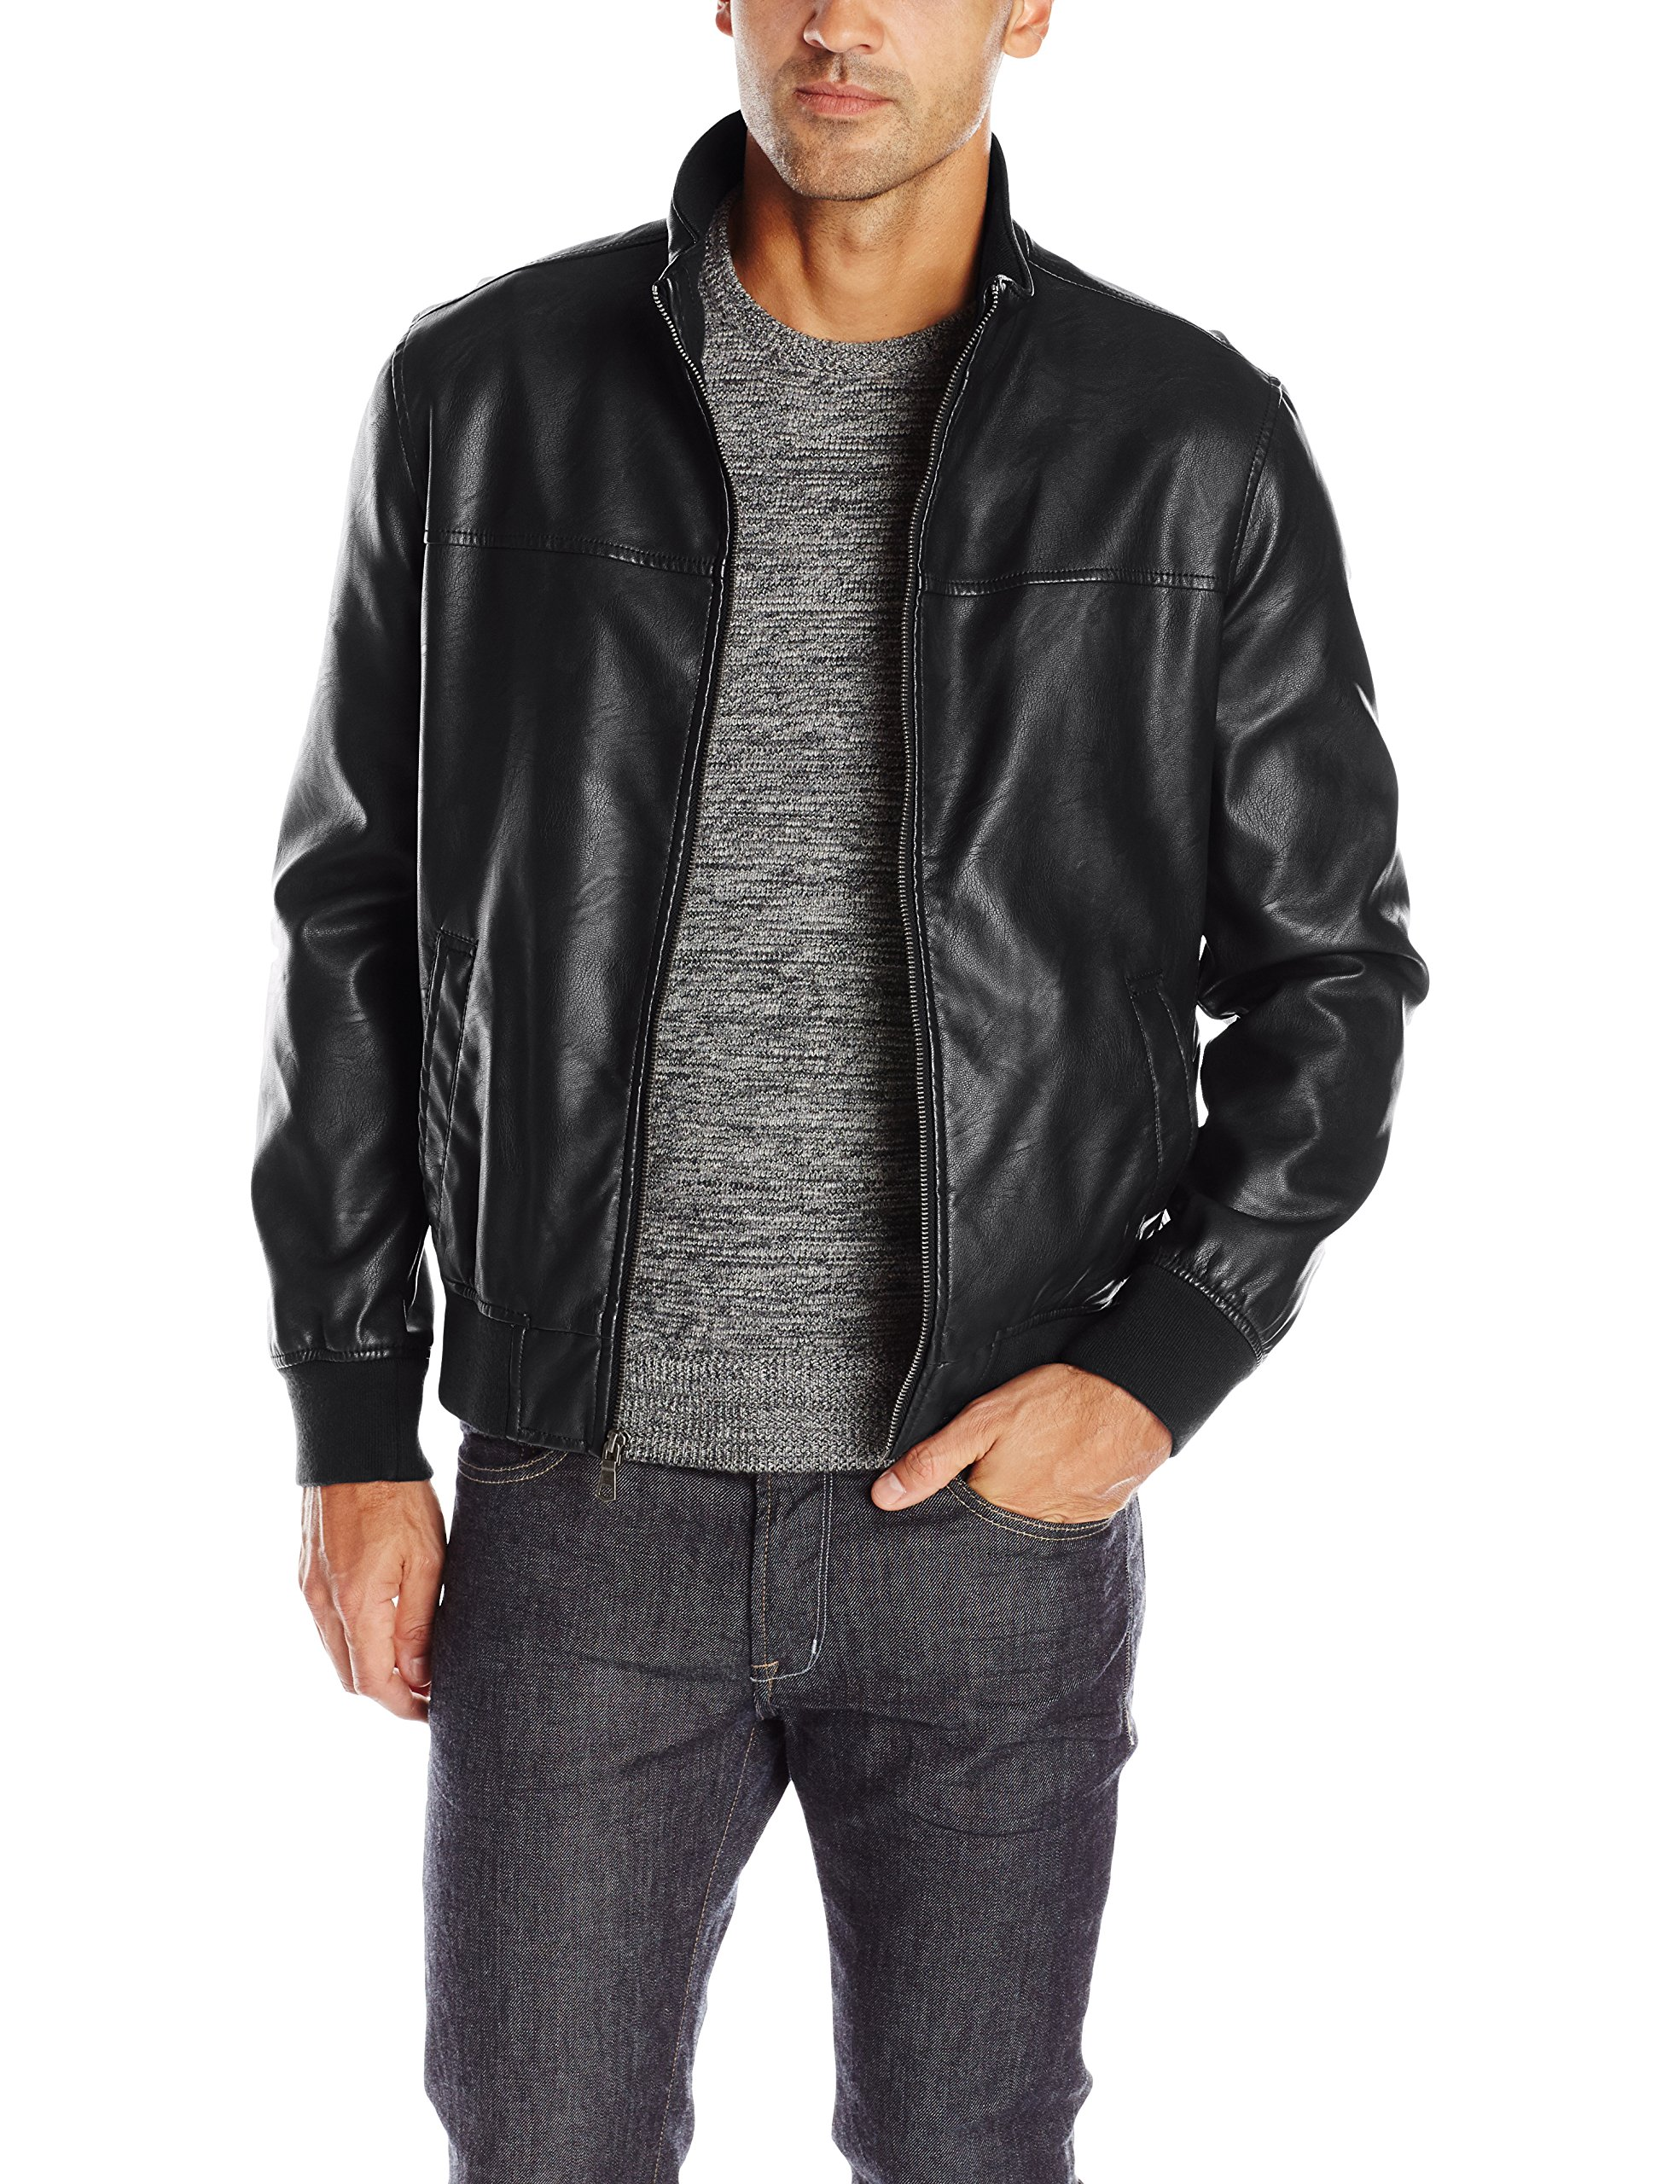 Tommy Hilfiger Men's Smooth Lamb Touch Faux Leather Unfilled Bomber, Black, L by Tommy Hilfiger